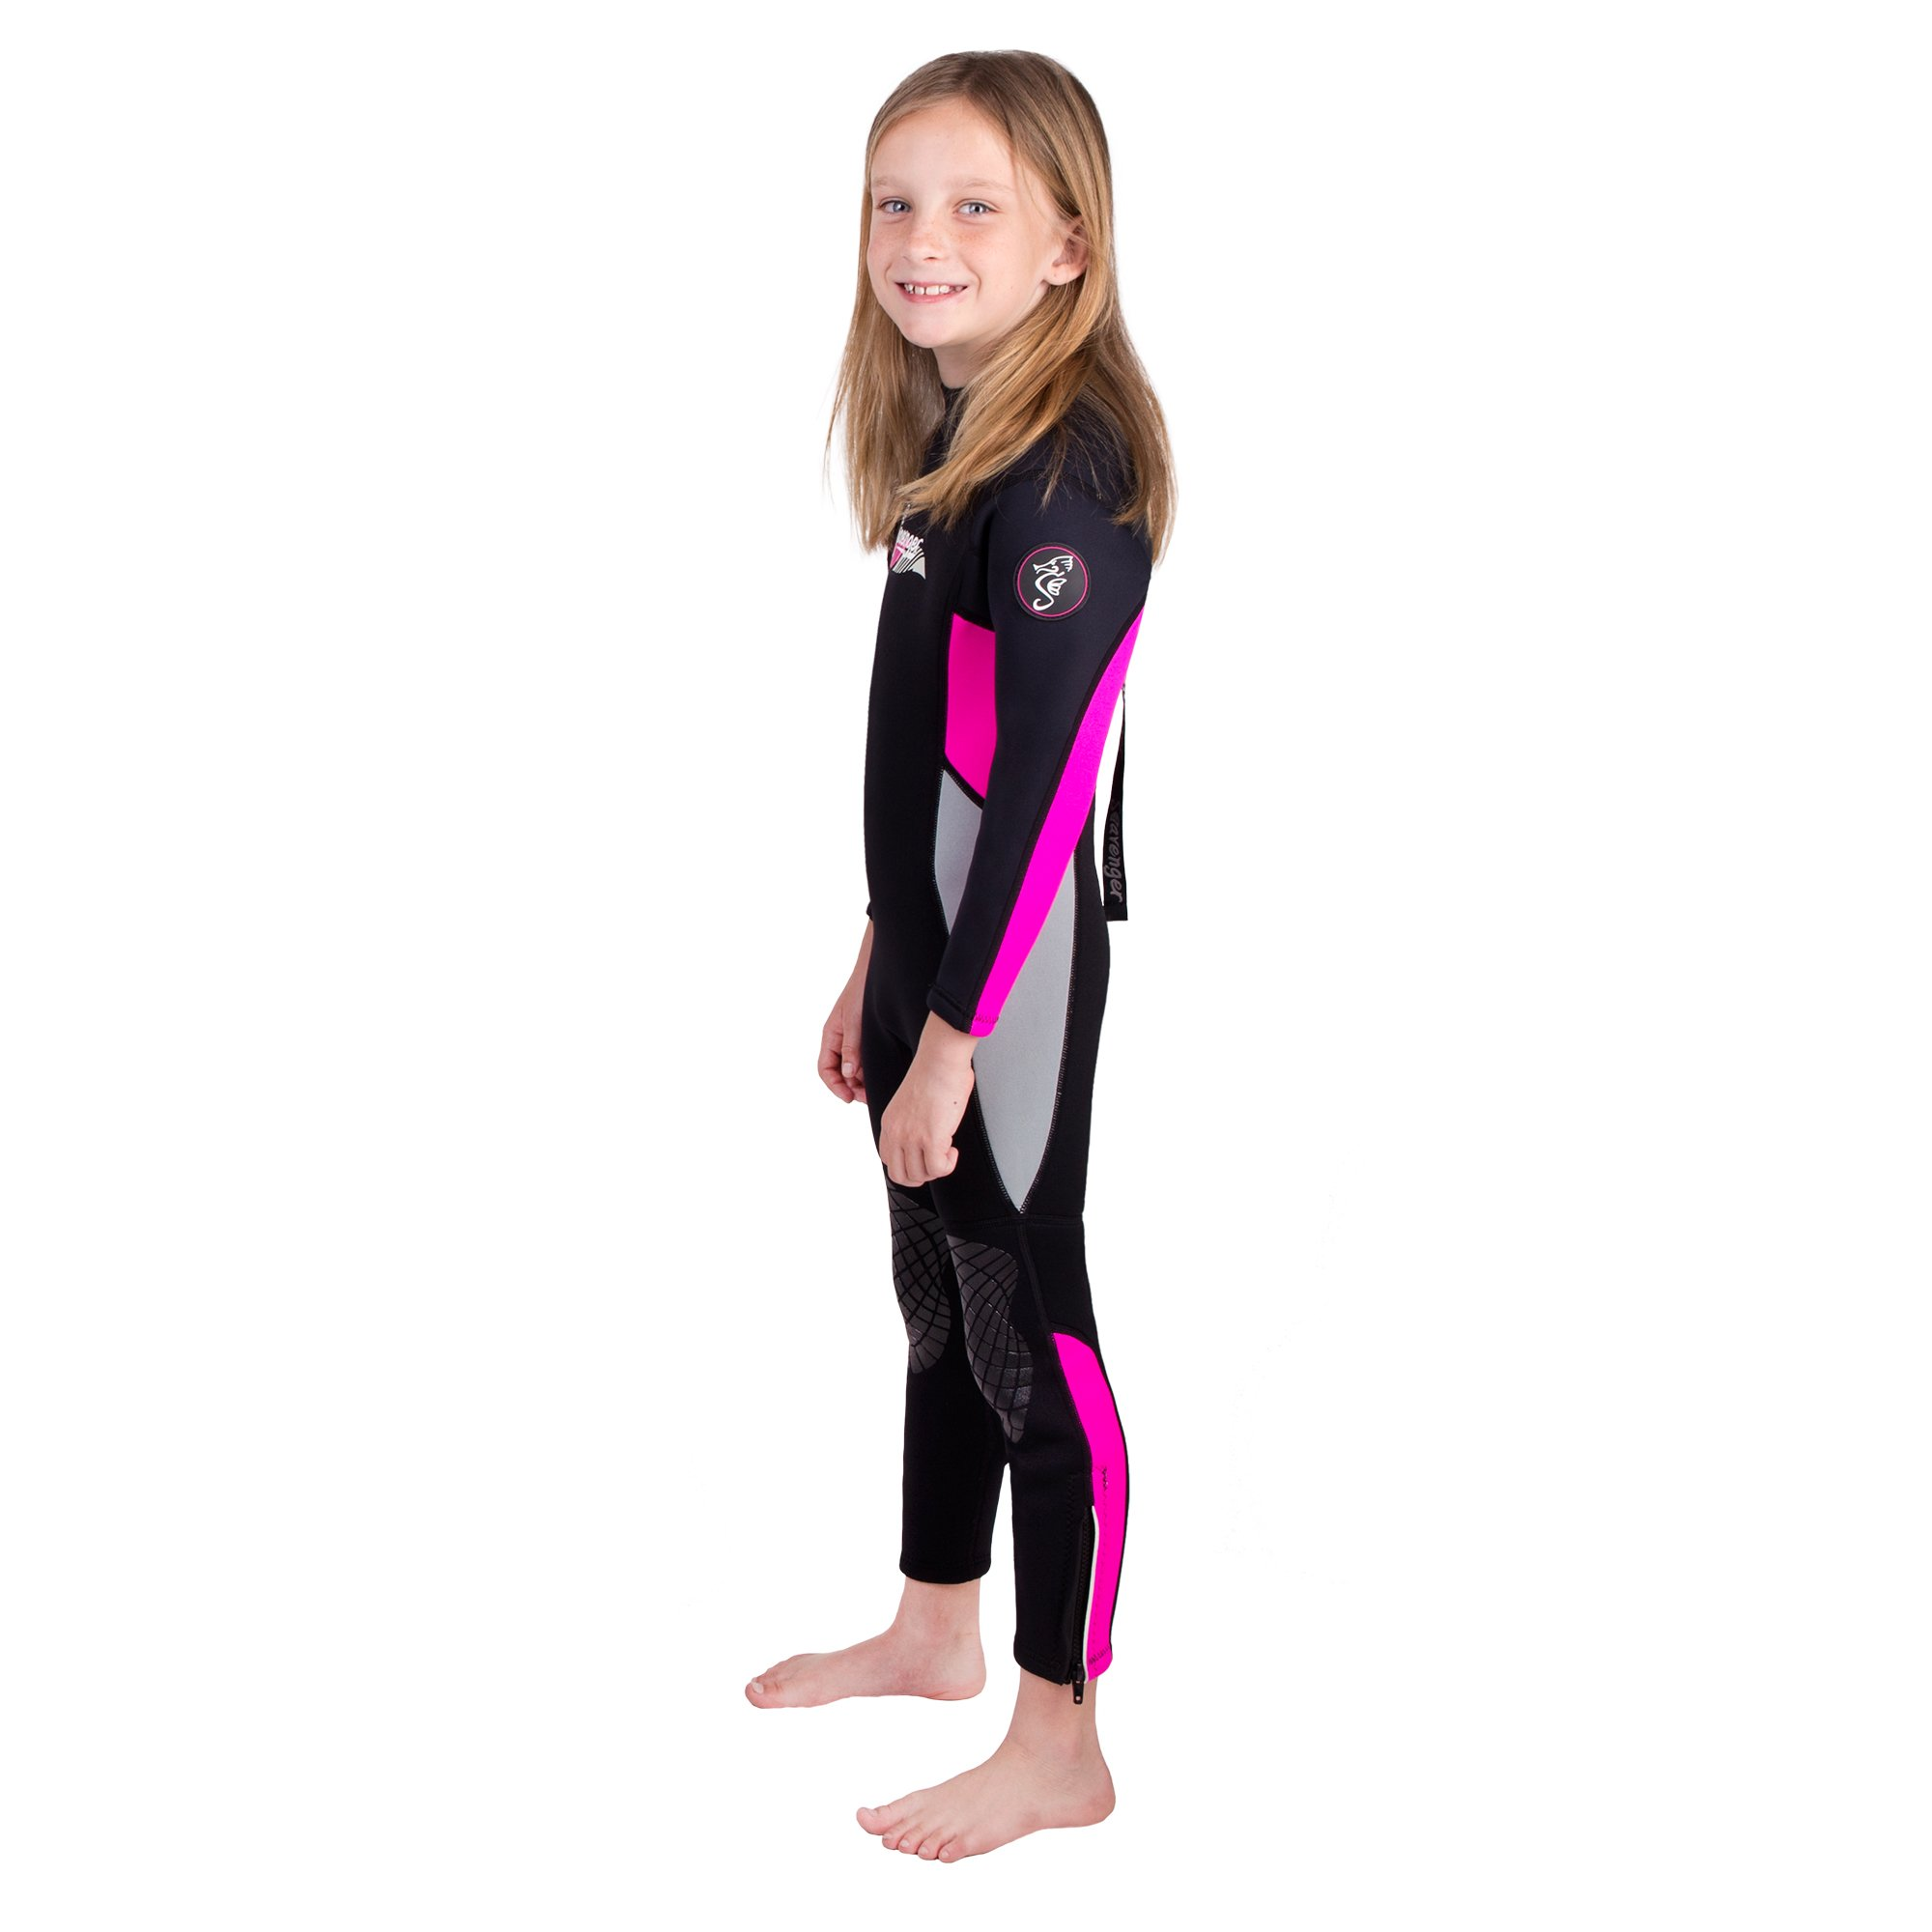 Seavenger Scout 3mm Kids Wetsuit | Full Body Neoprene Suit for Snorkeling, Swimming, Diving (Coral Pink, 6) by Seavenger (Image #5)